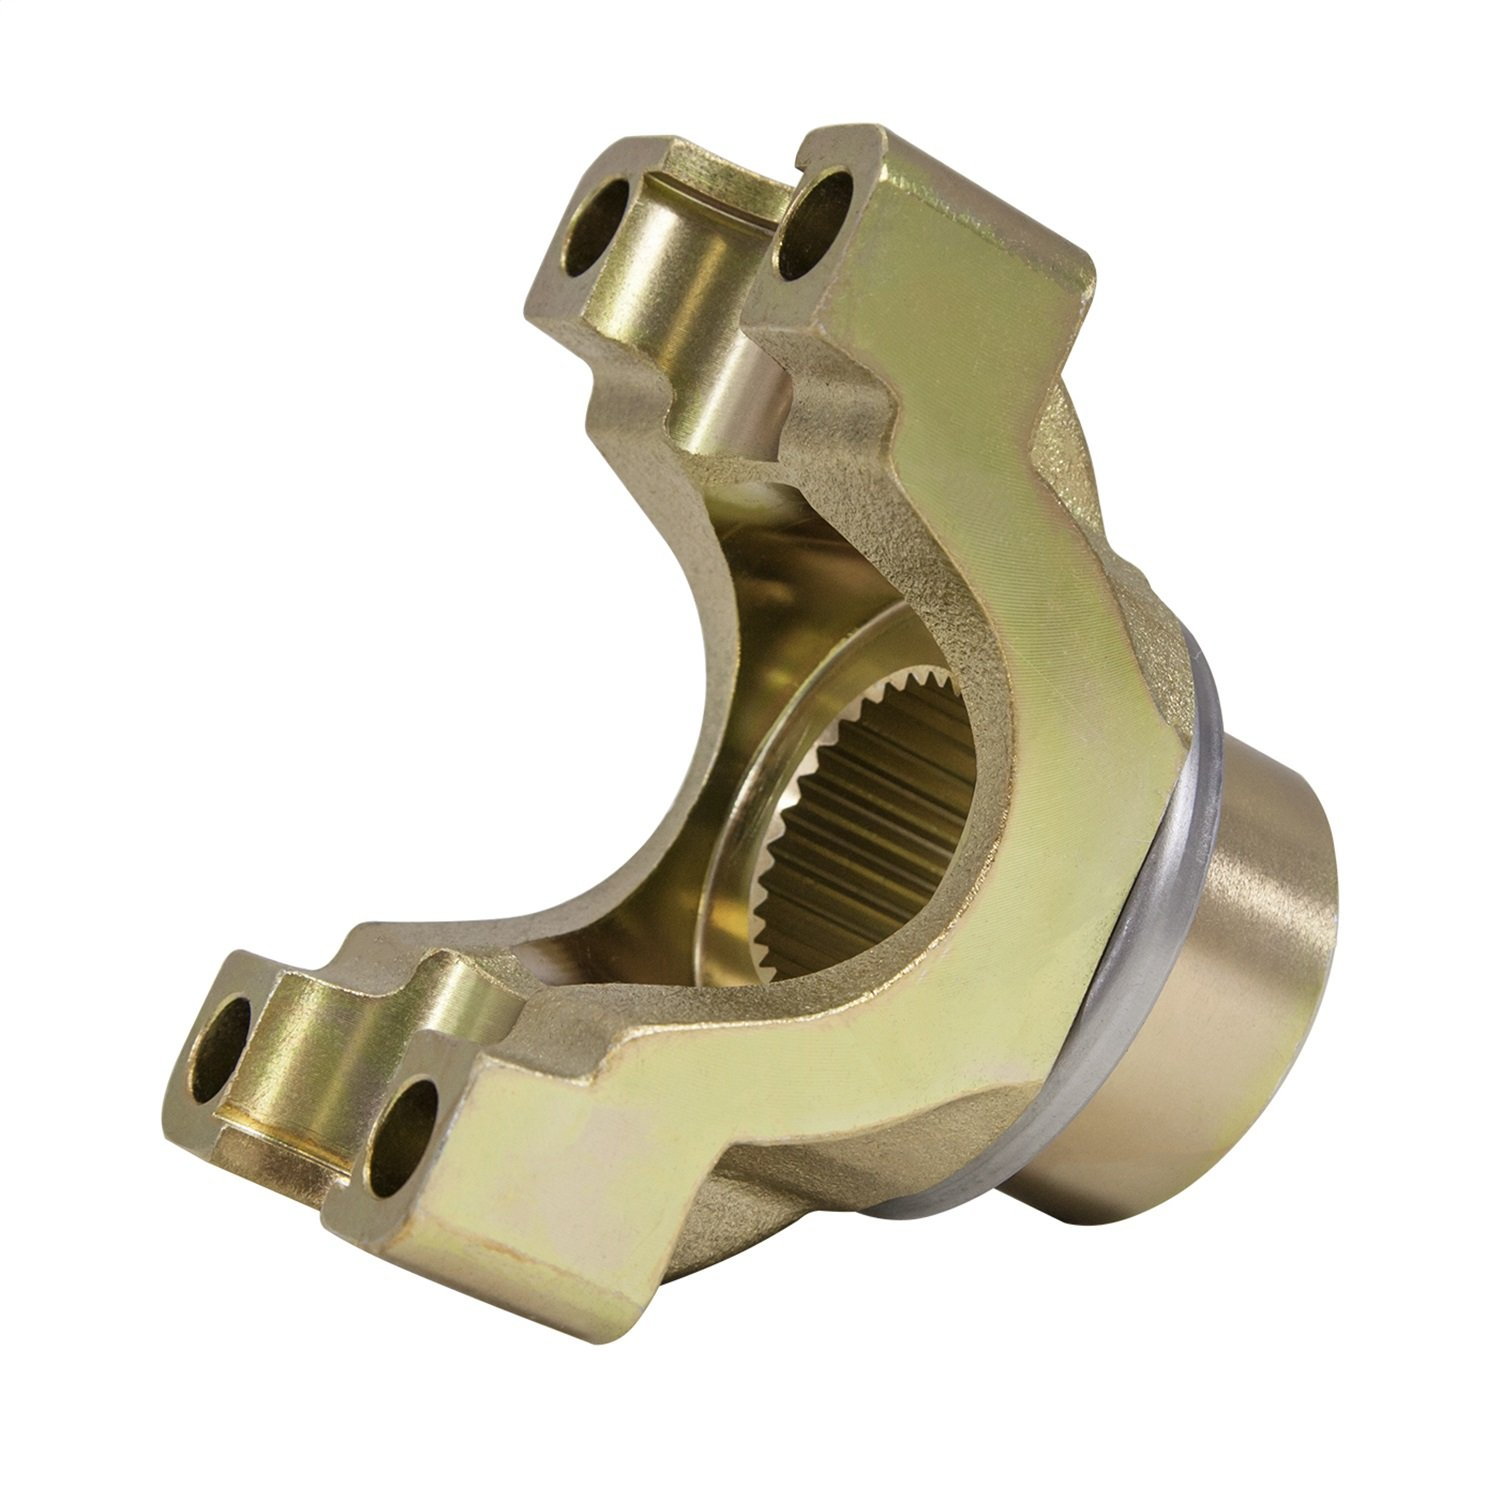 Yukon (YY D60-1350-F) Forged Replacement Yoke for Dana 60 Differential